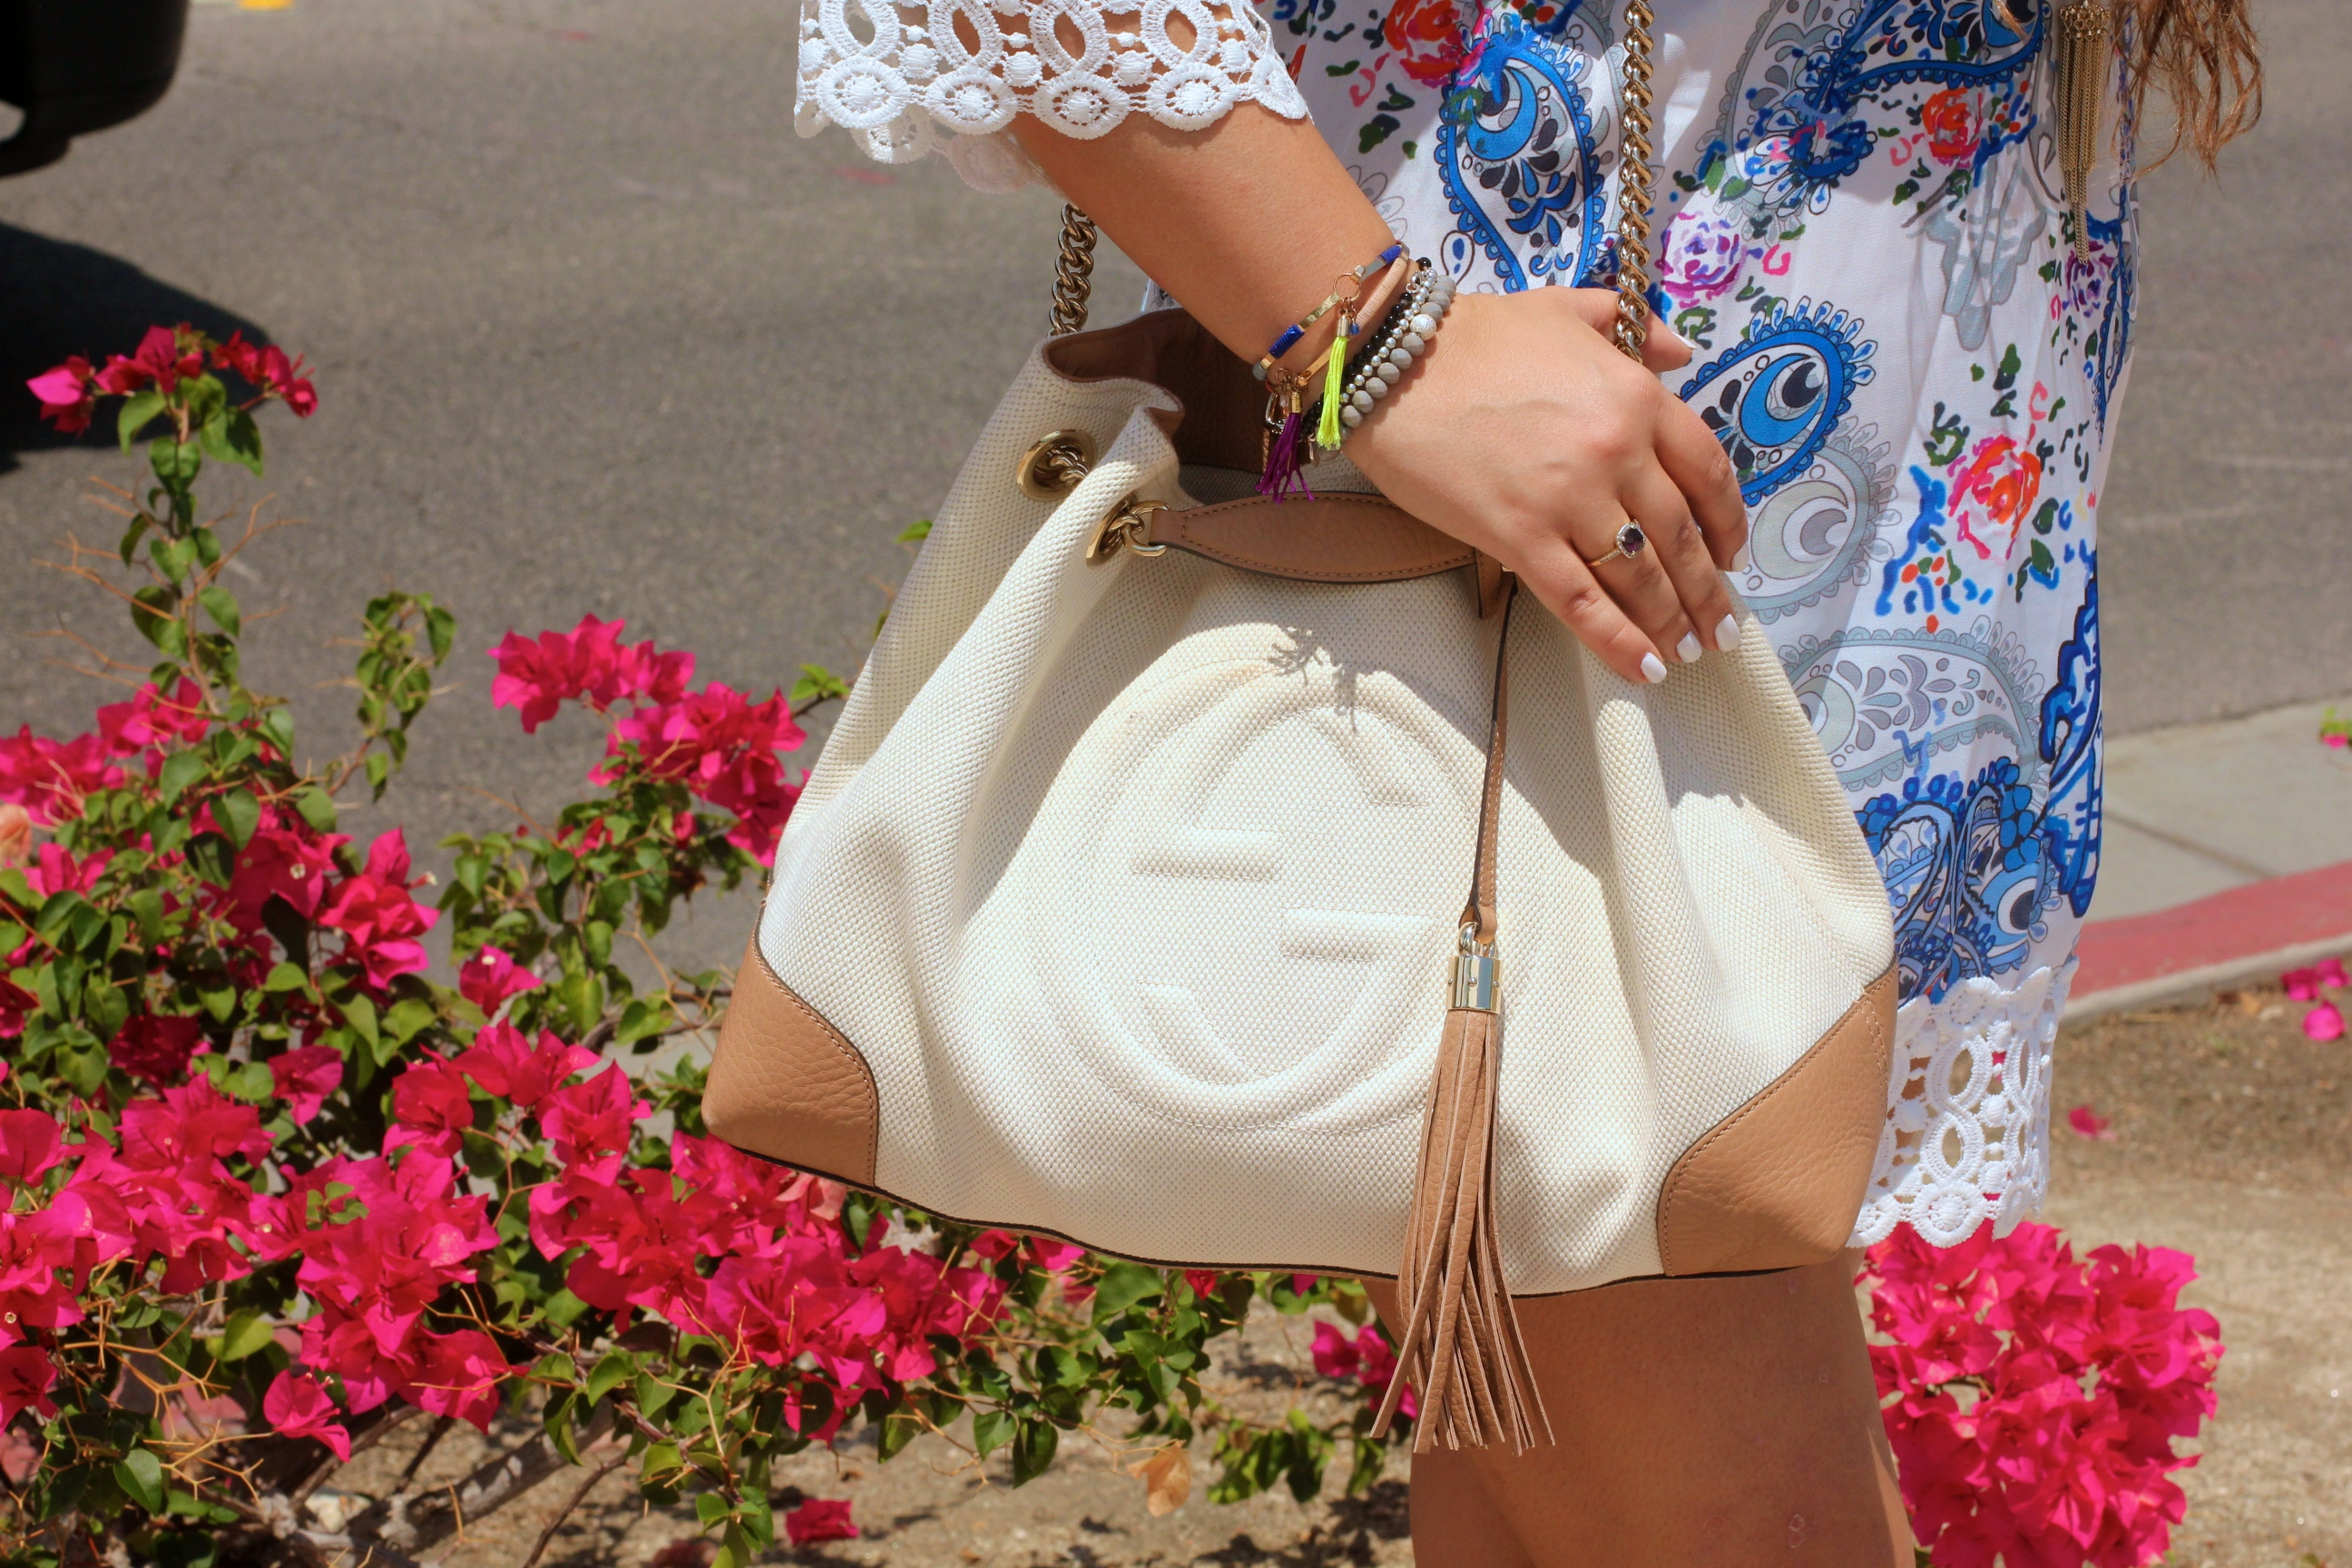 missyonmadison, melissa tierney, fashion blogger, palm springs, choies, paisley dress, gucci bag, gucci, gucci soho tote, espadrille wedges, nude espadrille wedges, ray bans, blue aviators, kendra scott necklace, la blogger blogger, tbt, style blogger,